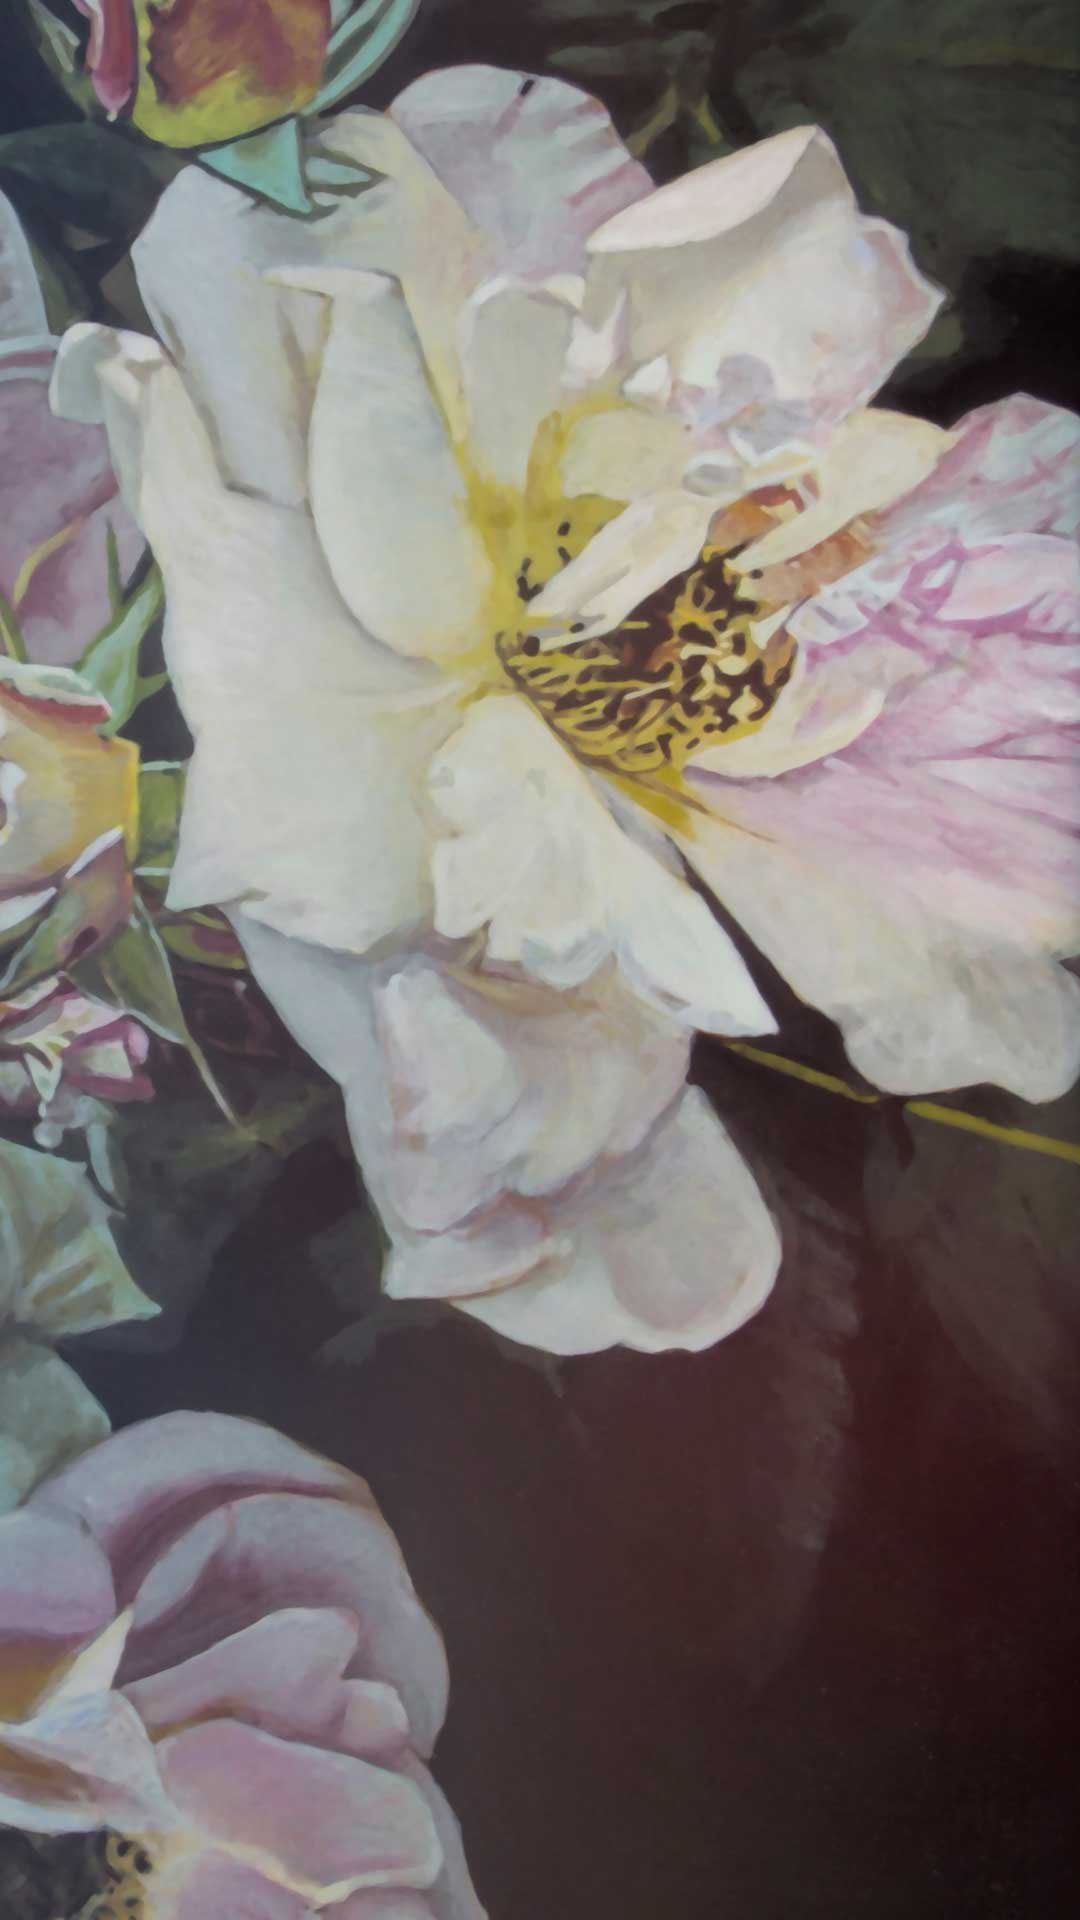 Photorealist painting - Flowers - Detail 2